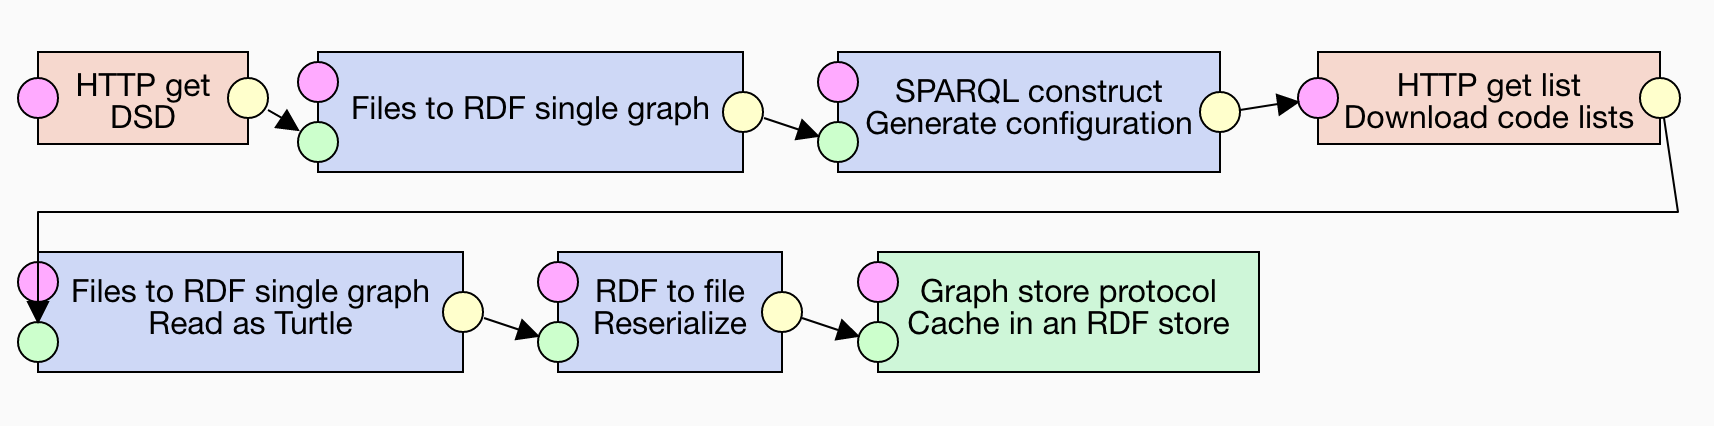 Pipeline for caching code lists